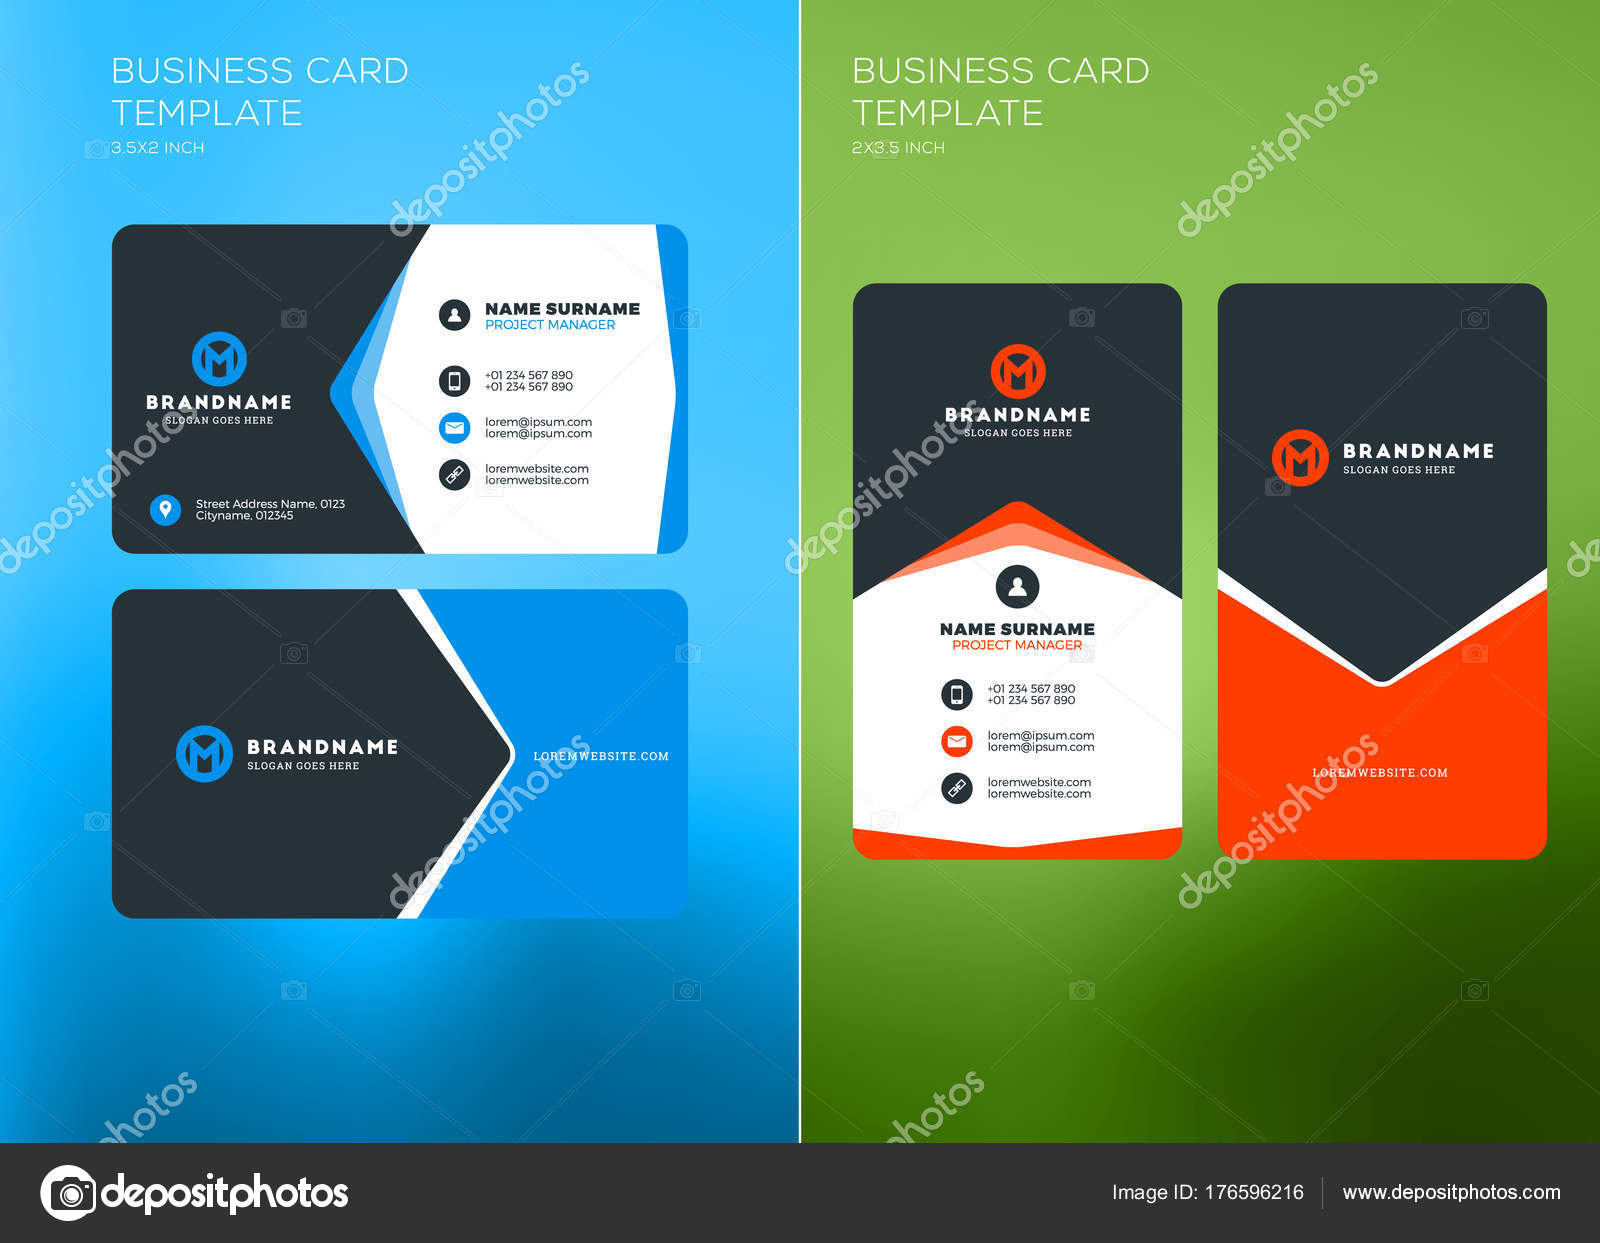 Corporate business card print template vertical and horizontal corporate business card print template vertical and horizontal business card templates vector illustration reheart Gallery